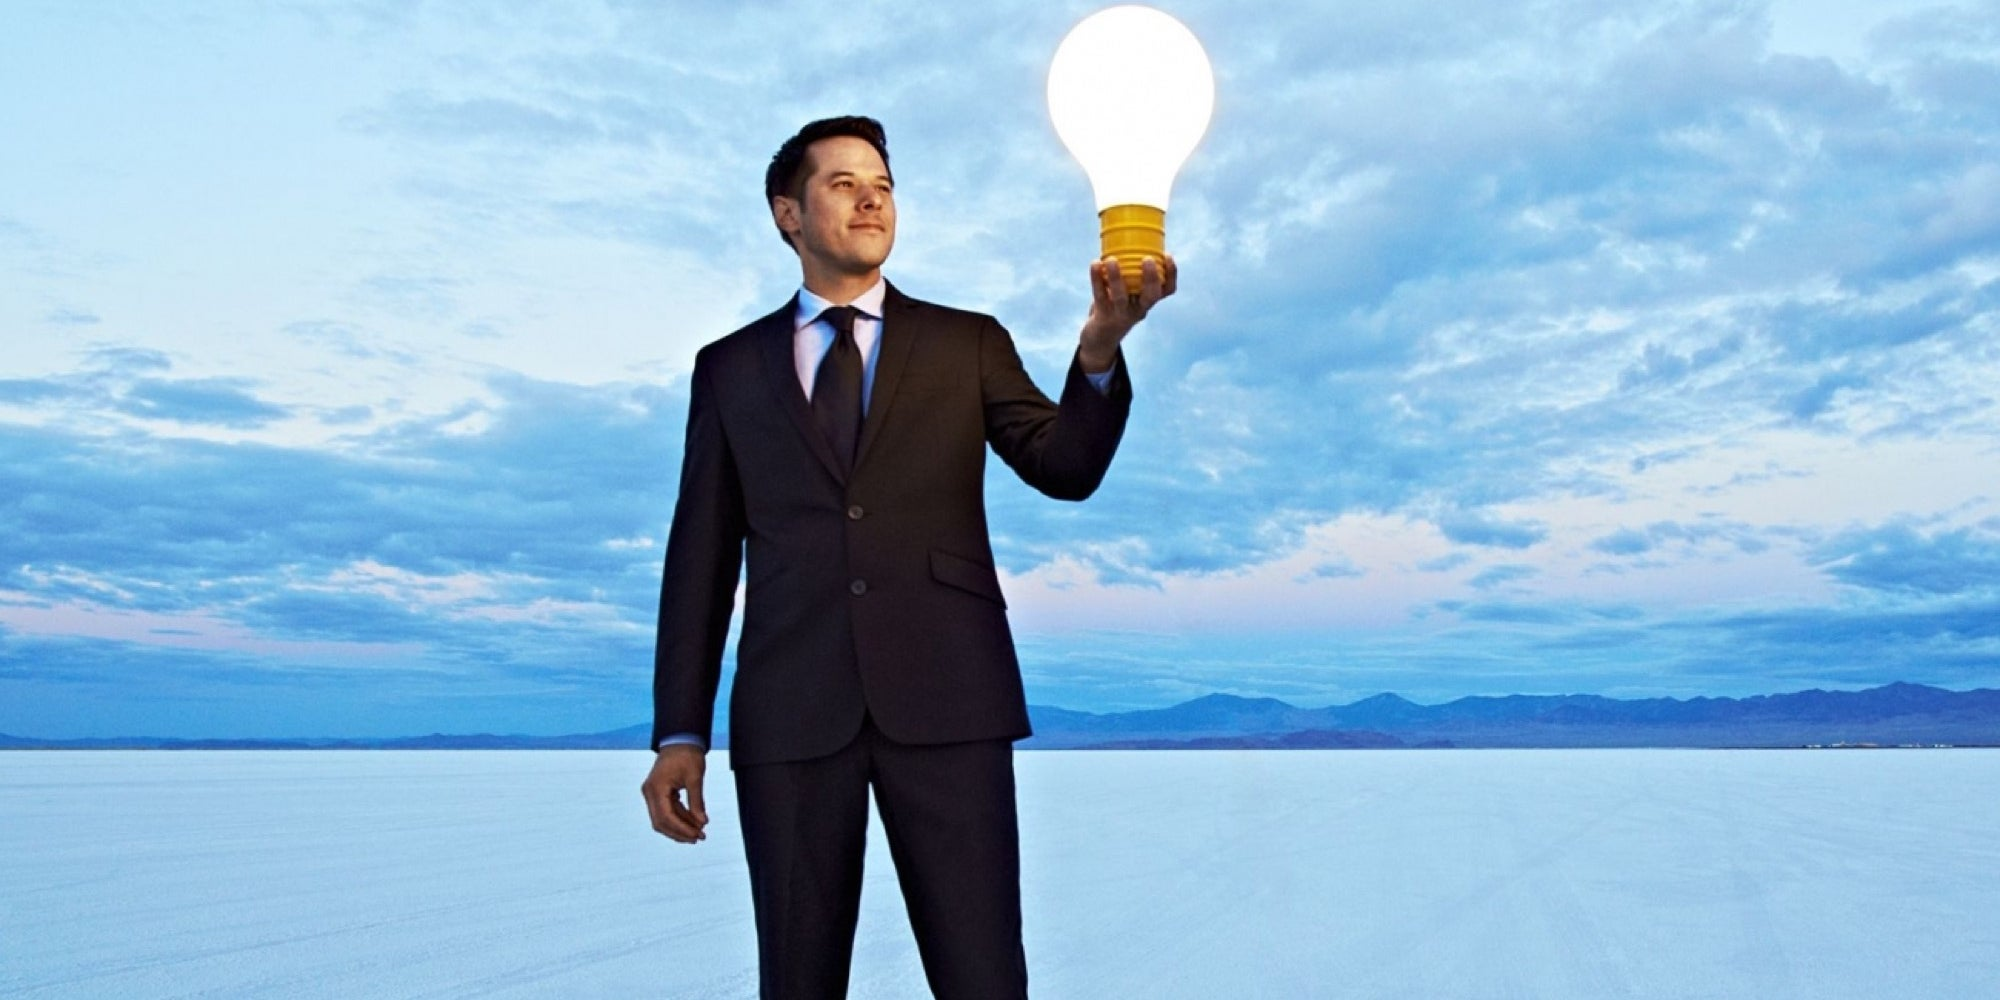 Businesses Disrupting Industries With Their Brilliant Ideas -- And What You Can Learn From Them